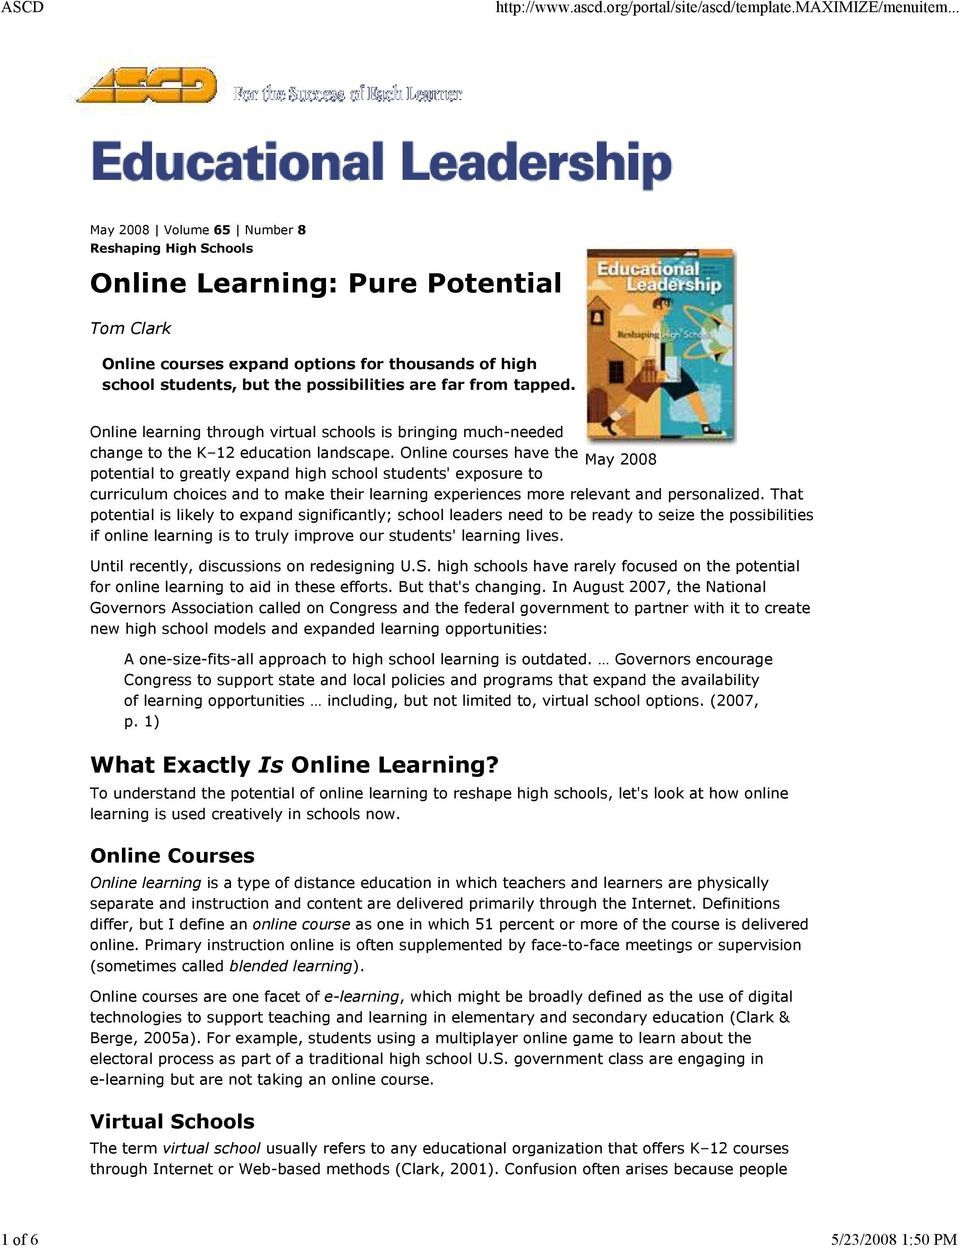 Online courses have the May 2008 potential to greatly expand high school students' exposure to curriculum choices and to make their learning experiences more relevant and personalized.